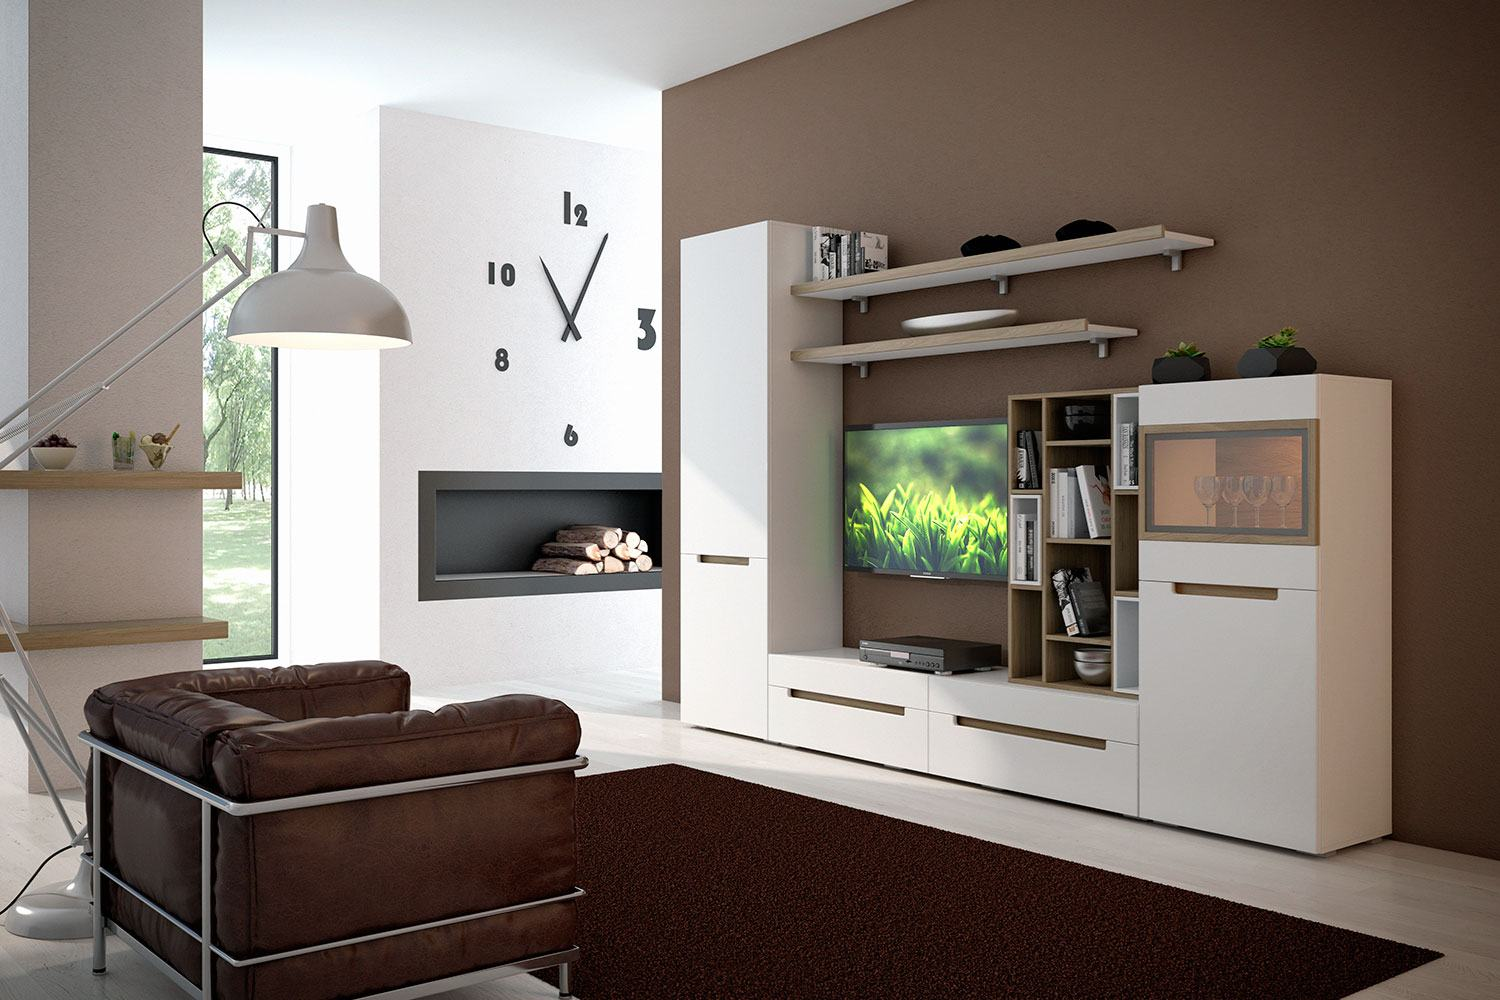 White design of the wall with fireplace and the white cabinet furniture